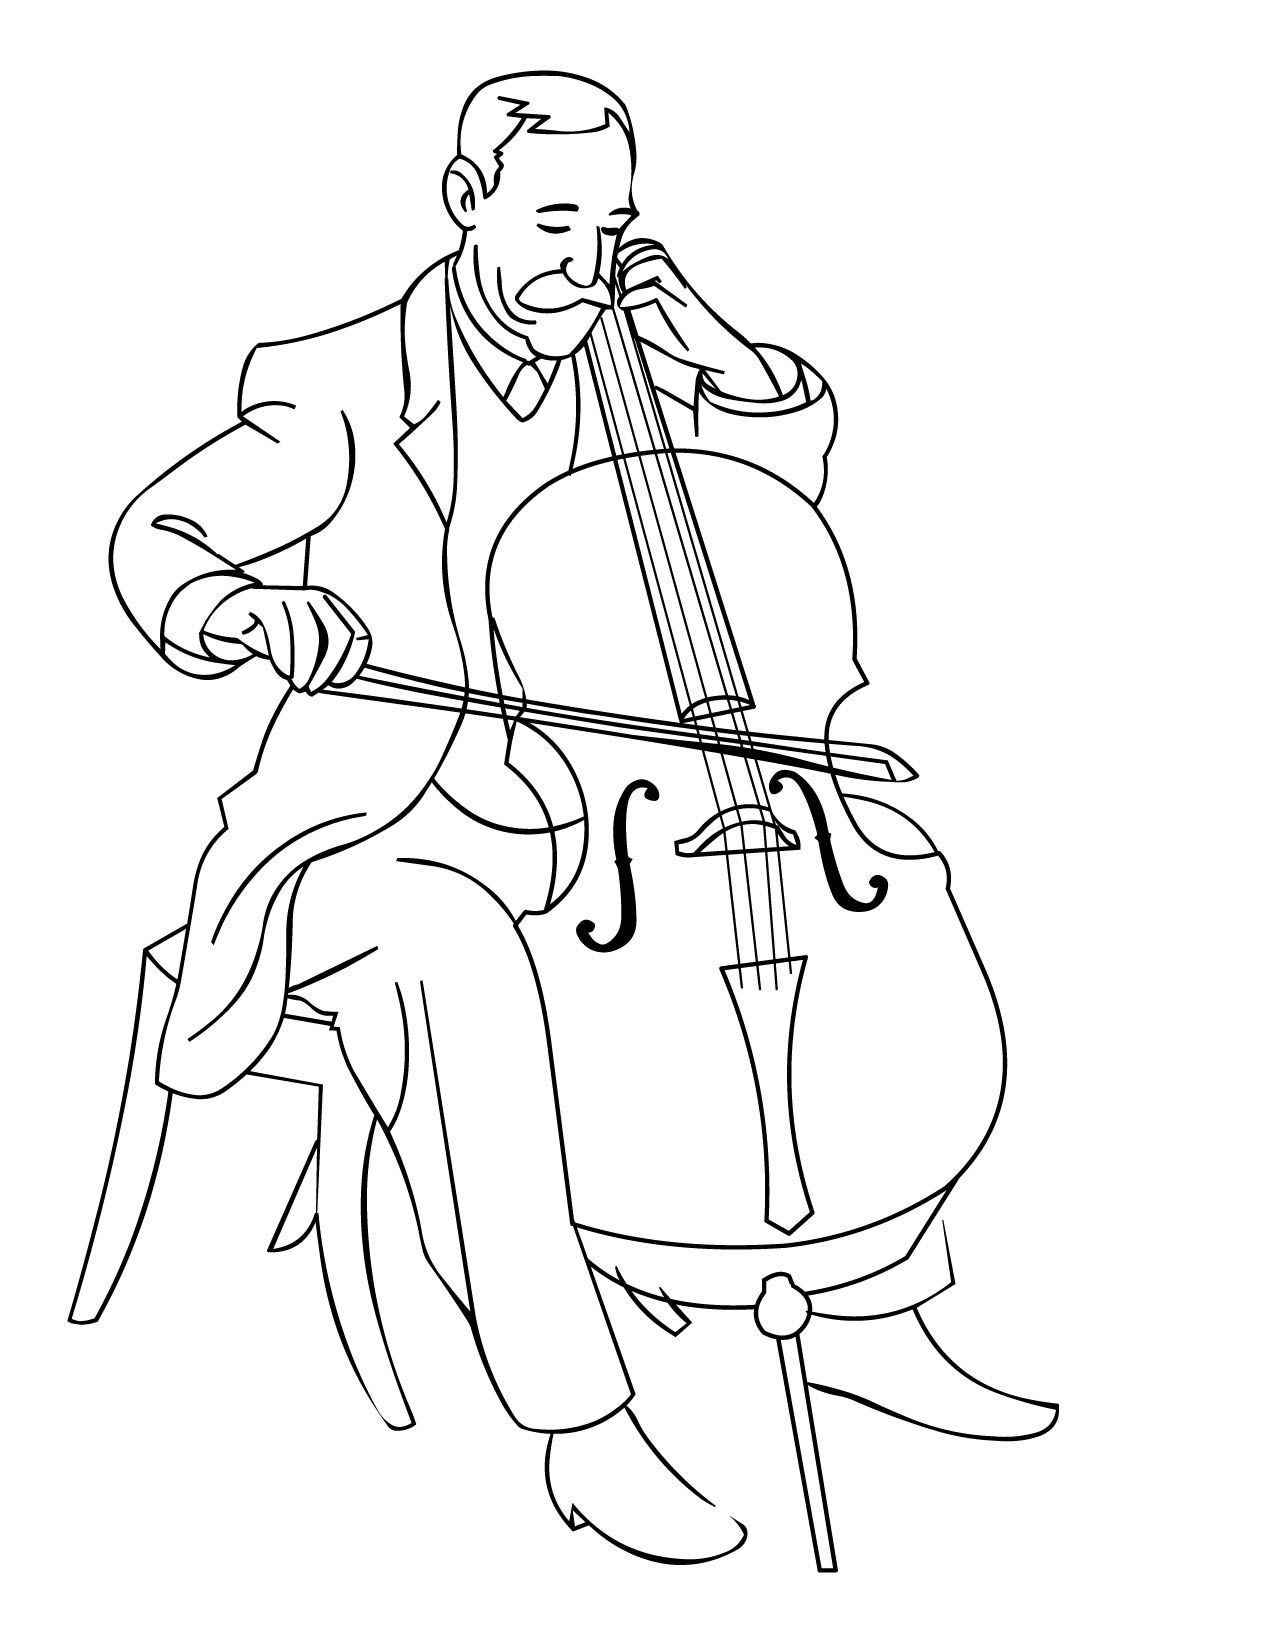 1275x1650 Music Coloring Pages Musical Drums Coloring, Drums, Kids